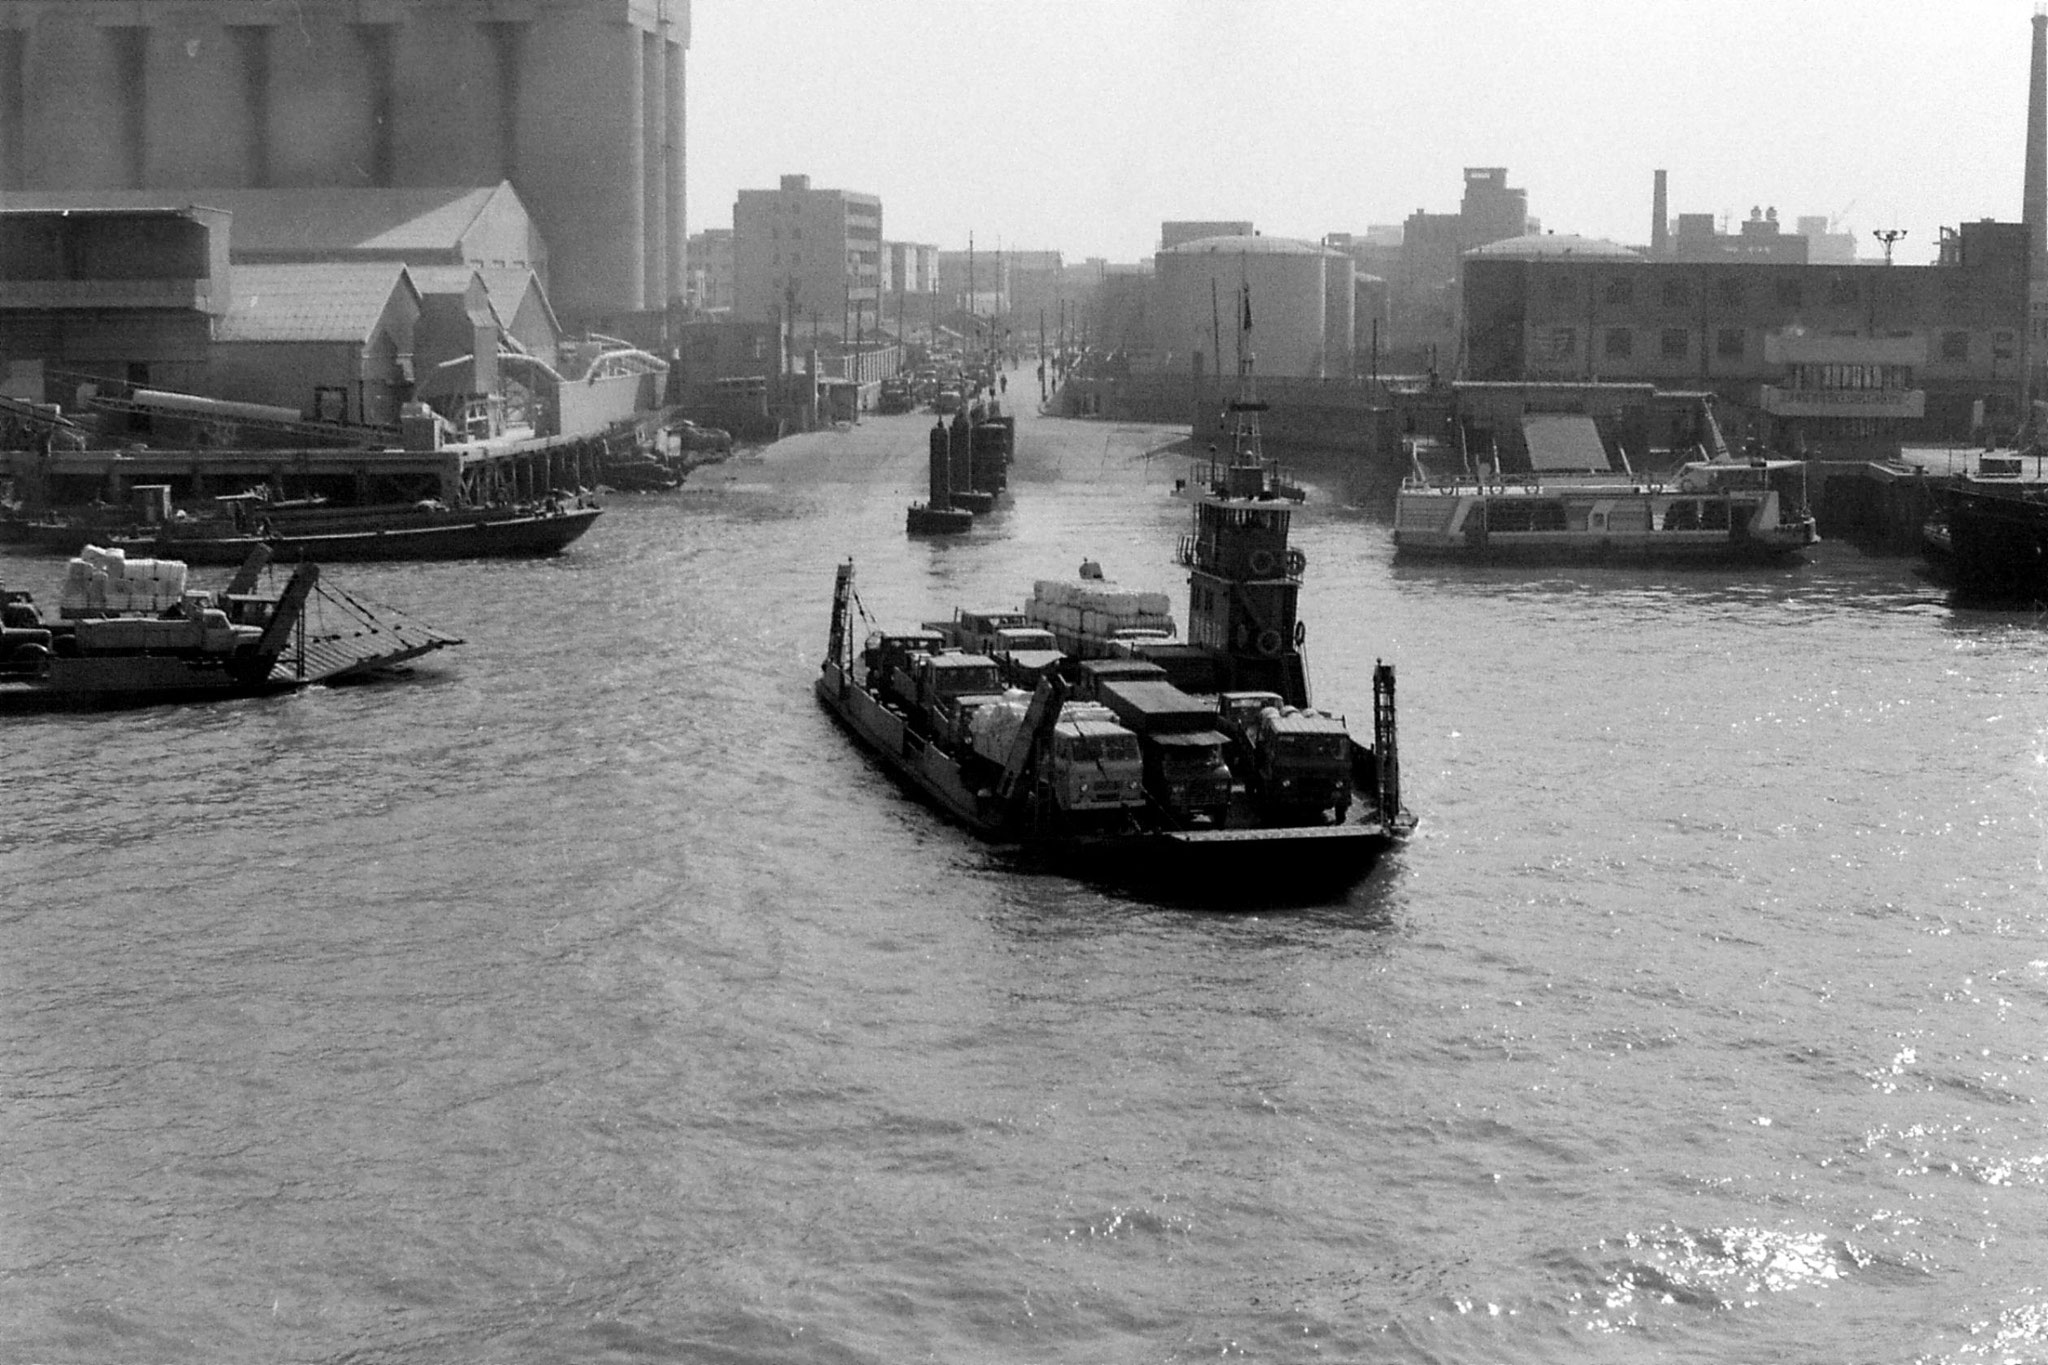 17/12/1988: 3: Shanghai harbour from ship to Kobe